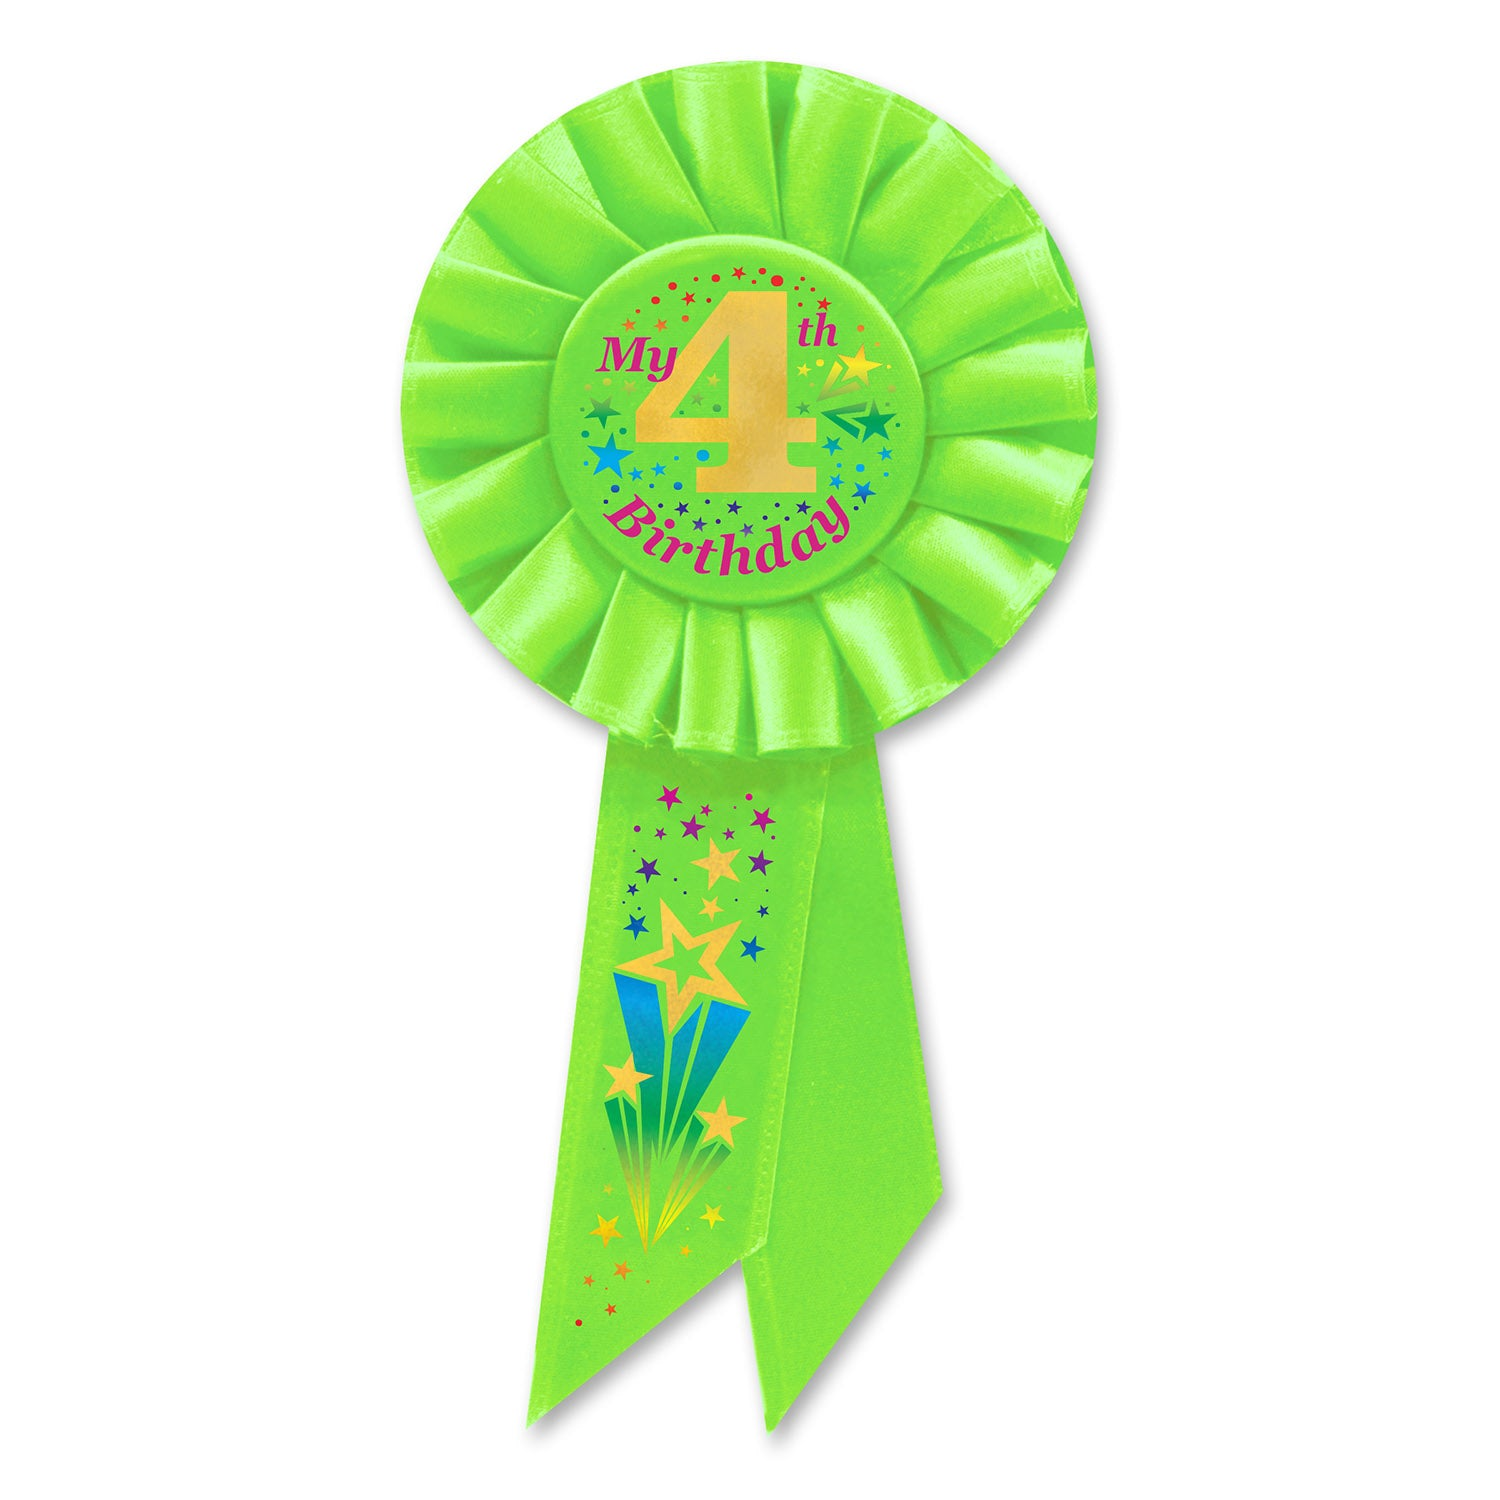 My 4th Birthday Rosette Party Supplies Decorations The Beistle Company